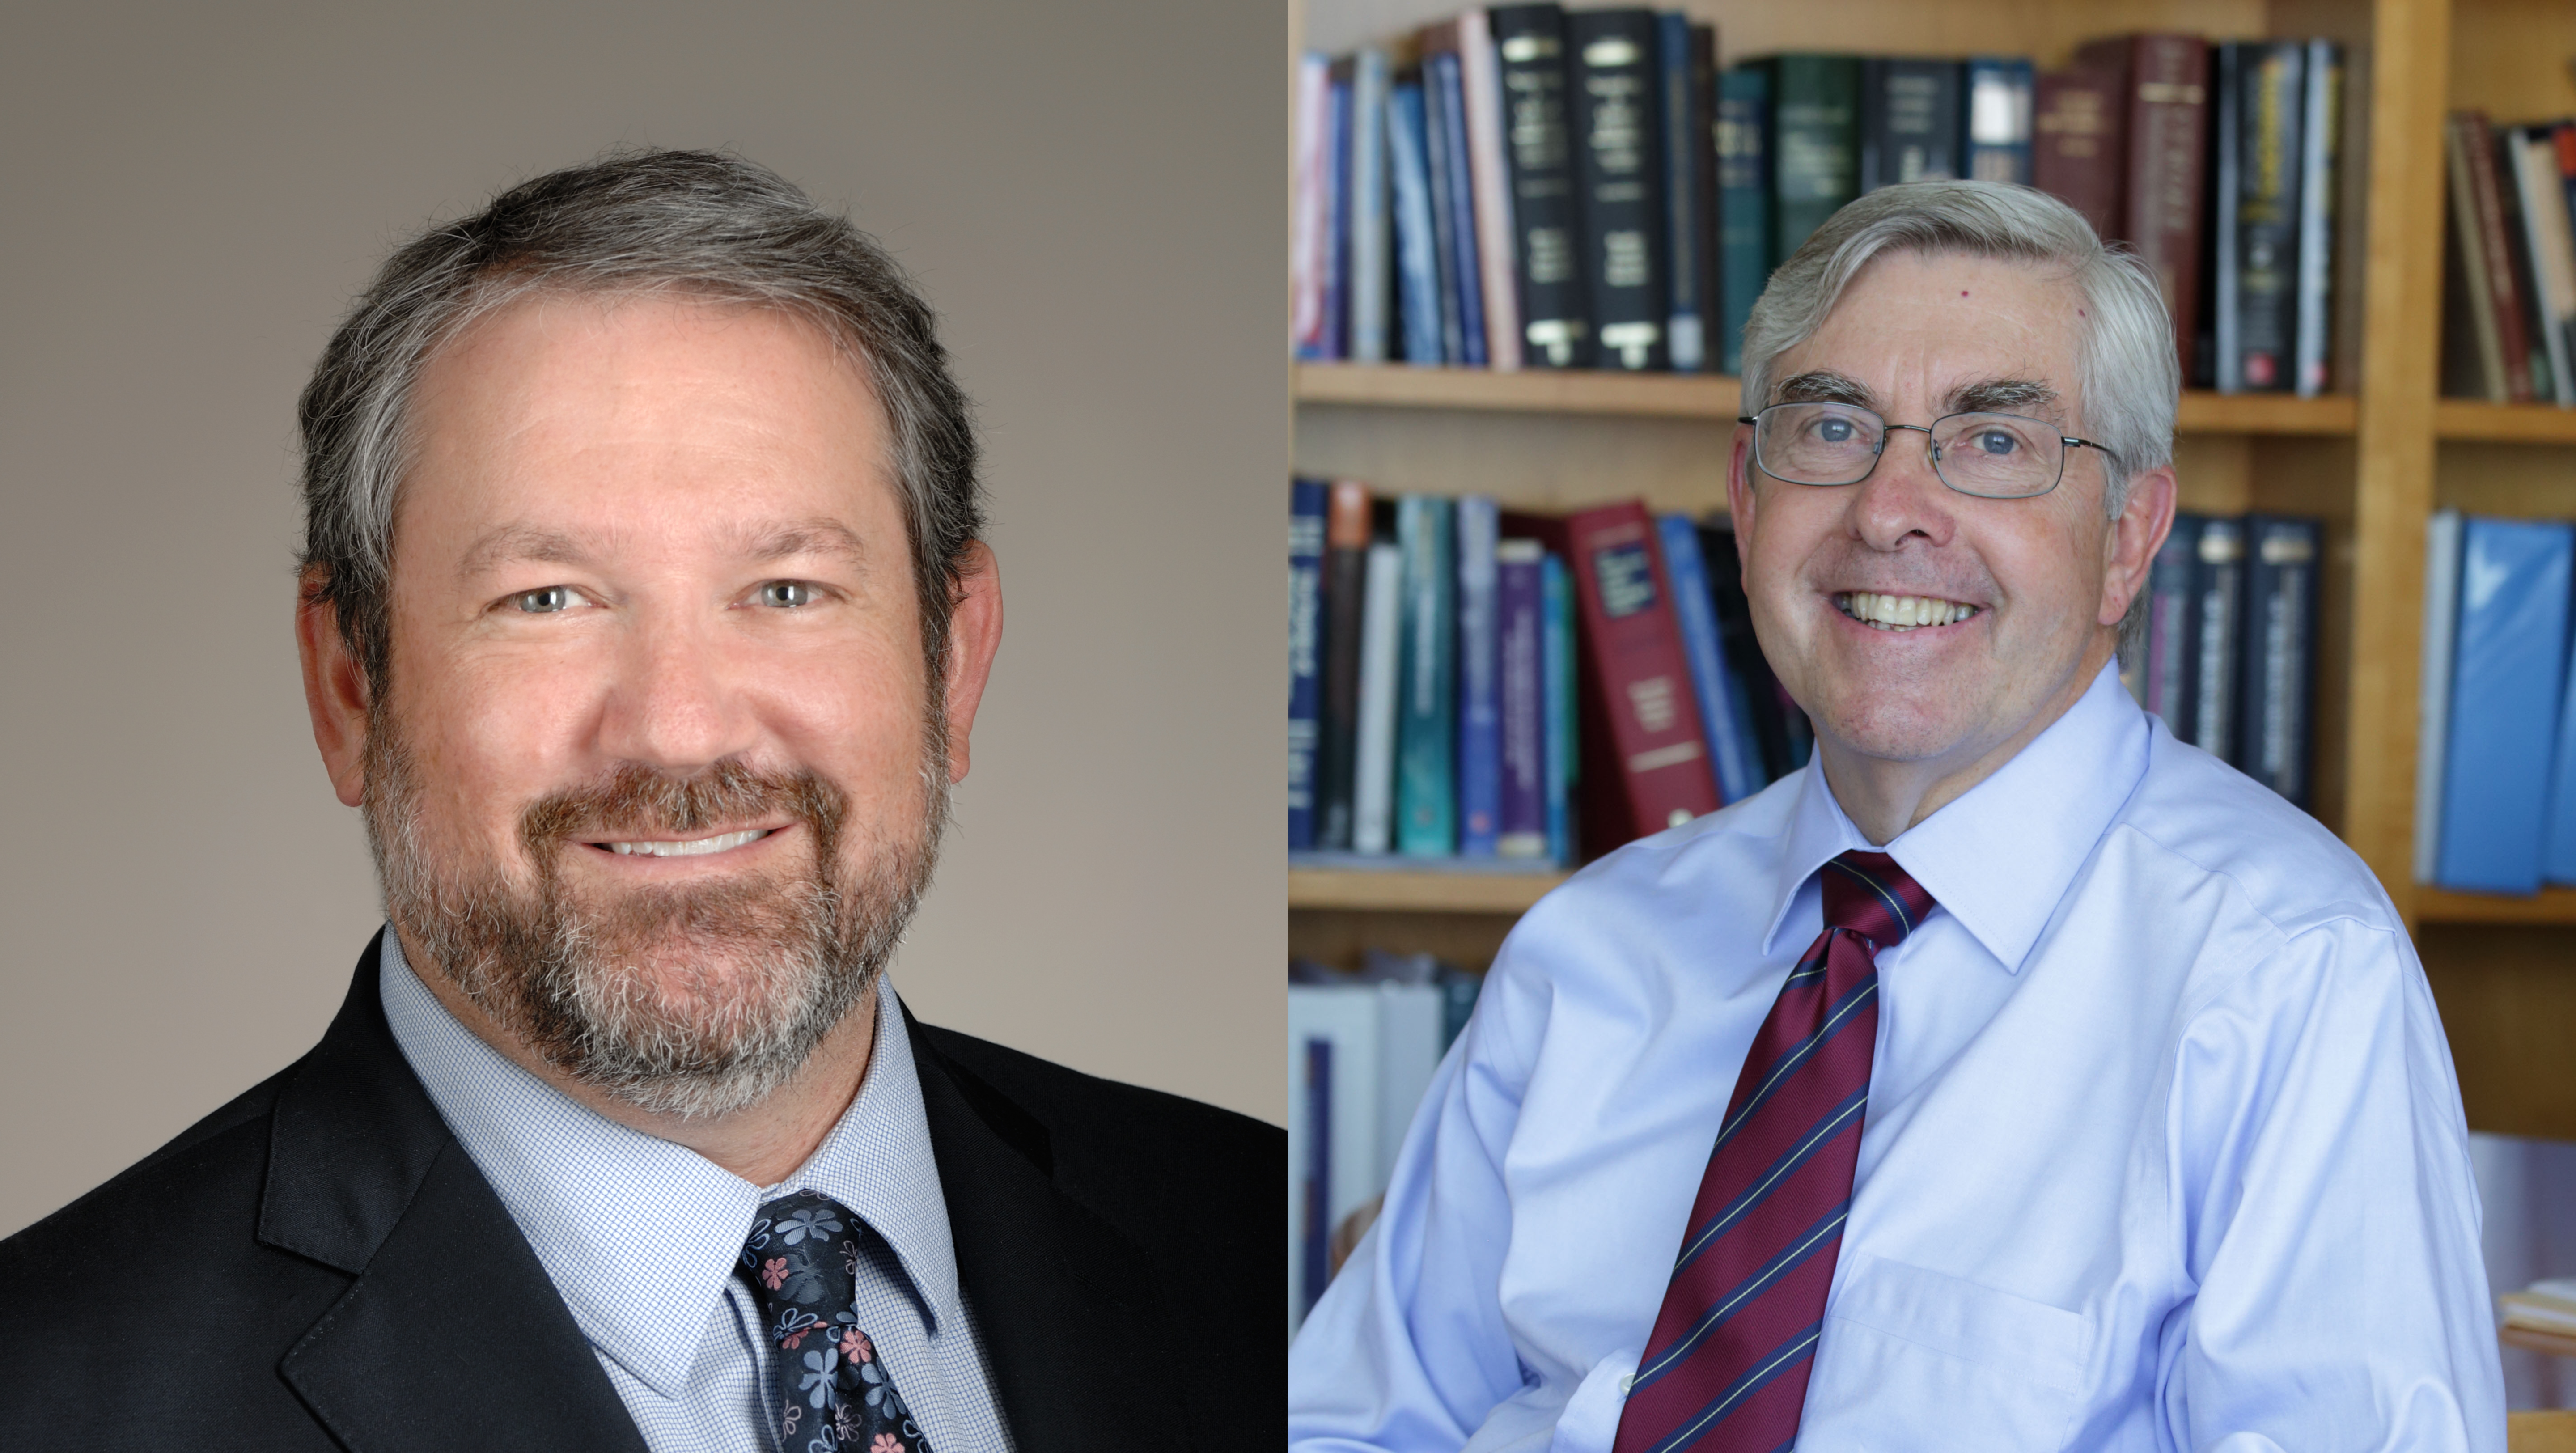 Joshua Gordon, MD, PhD, (left) and Walter J. Koroshetz, MD (right)